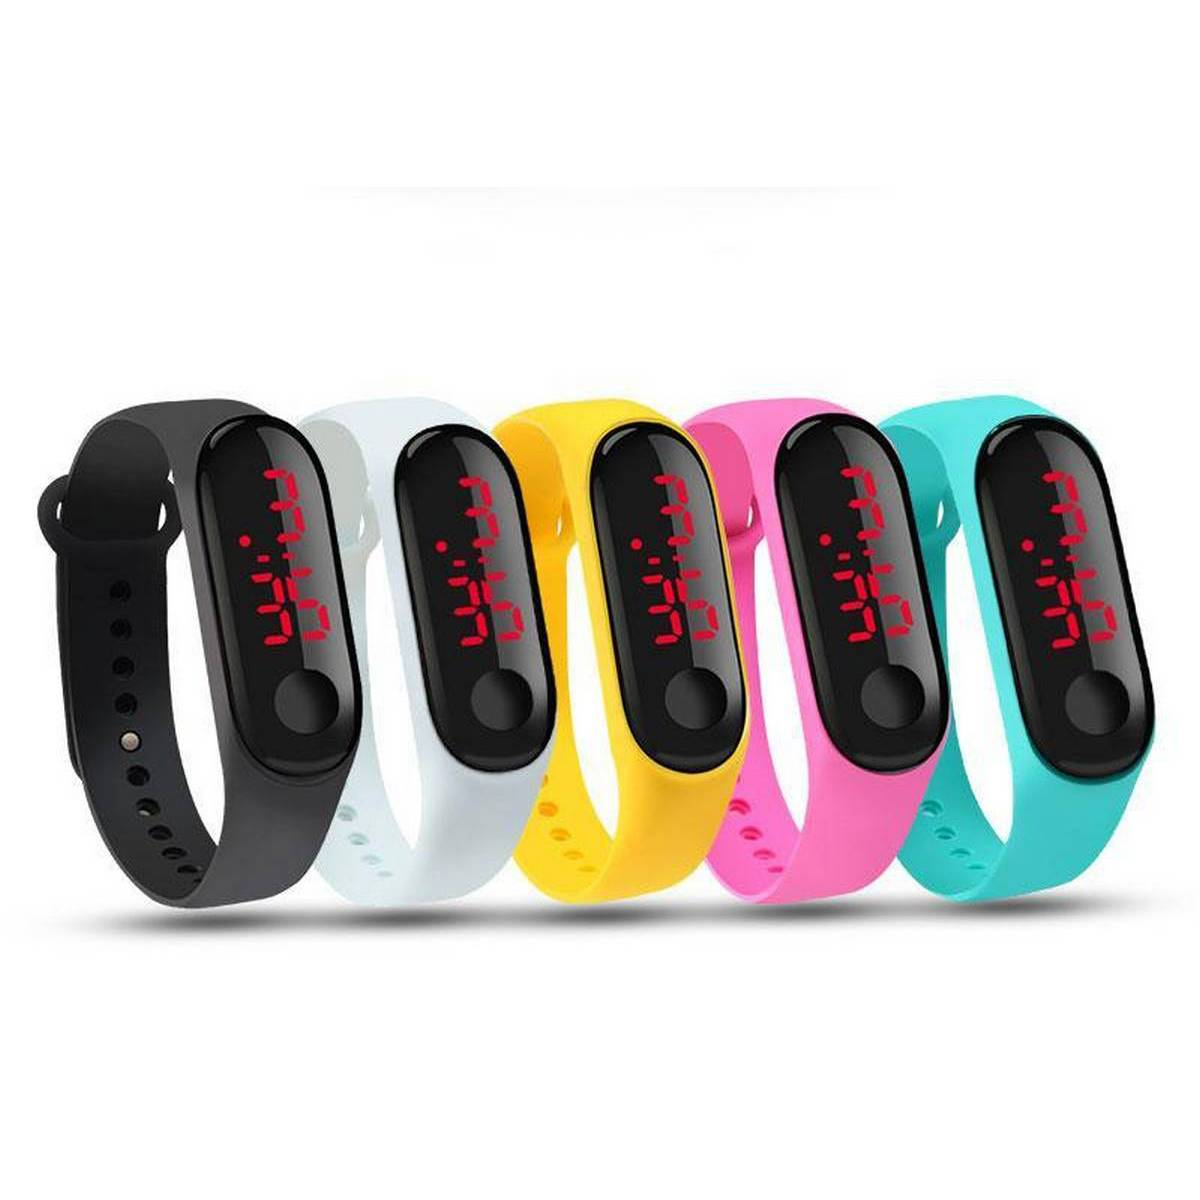 Pack Of 5 Rubber Led Sports Watch - Multicolour